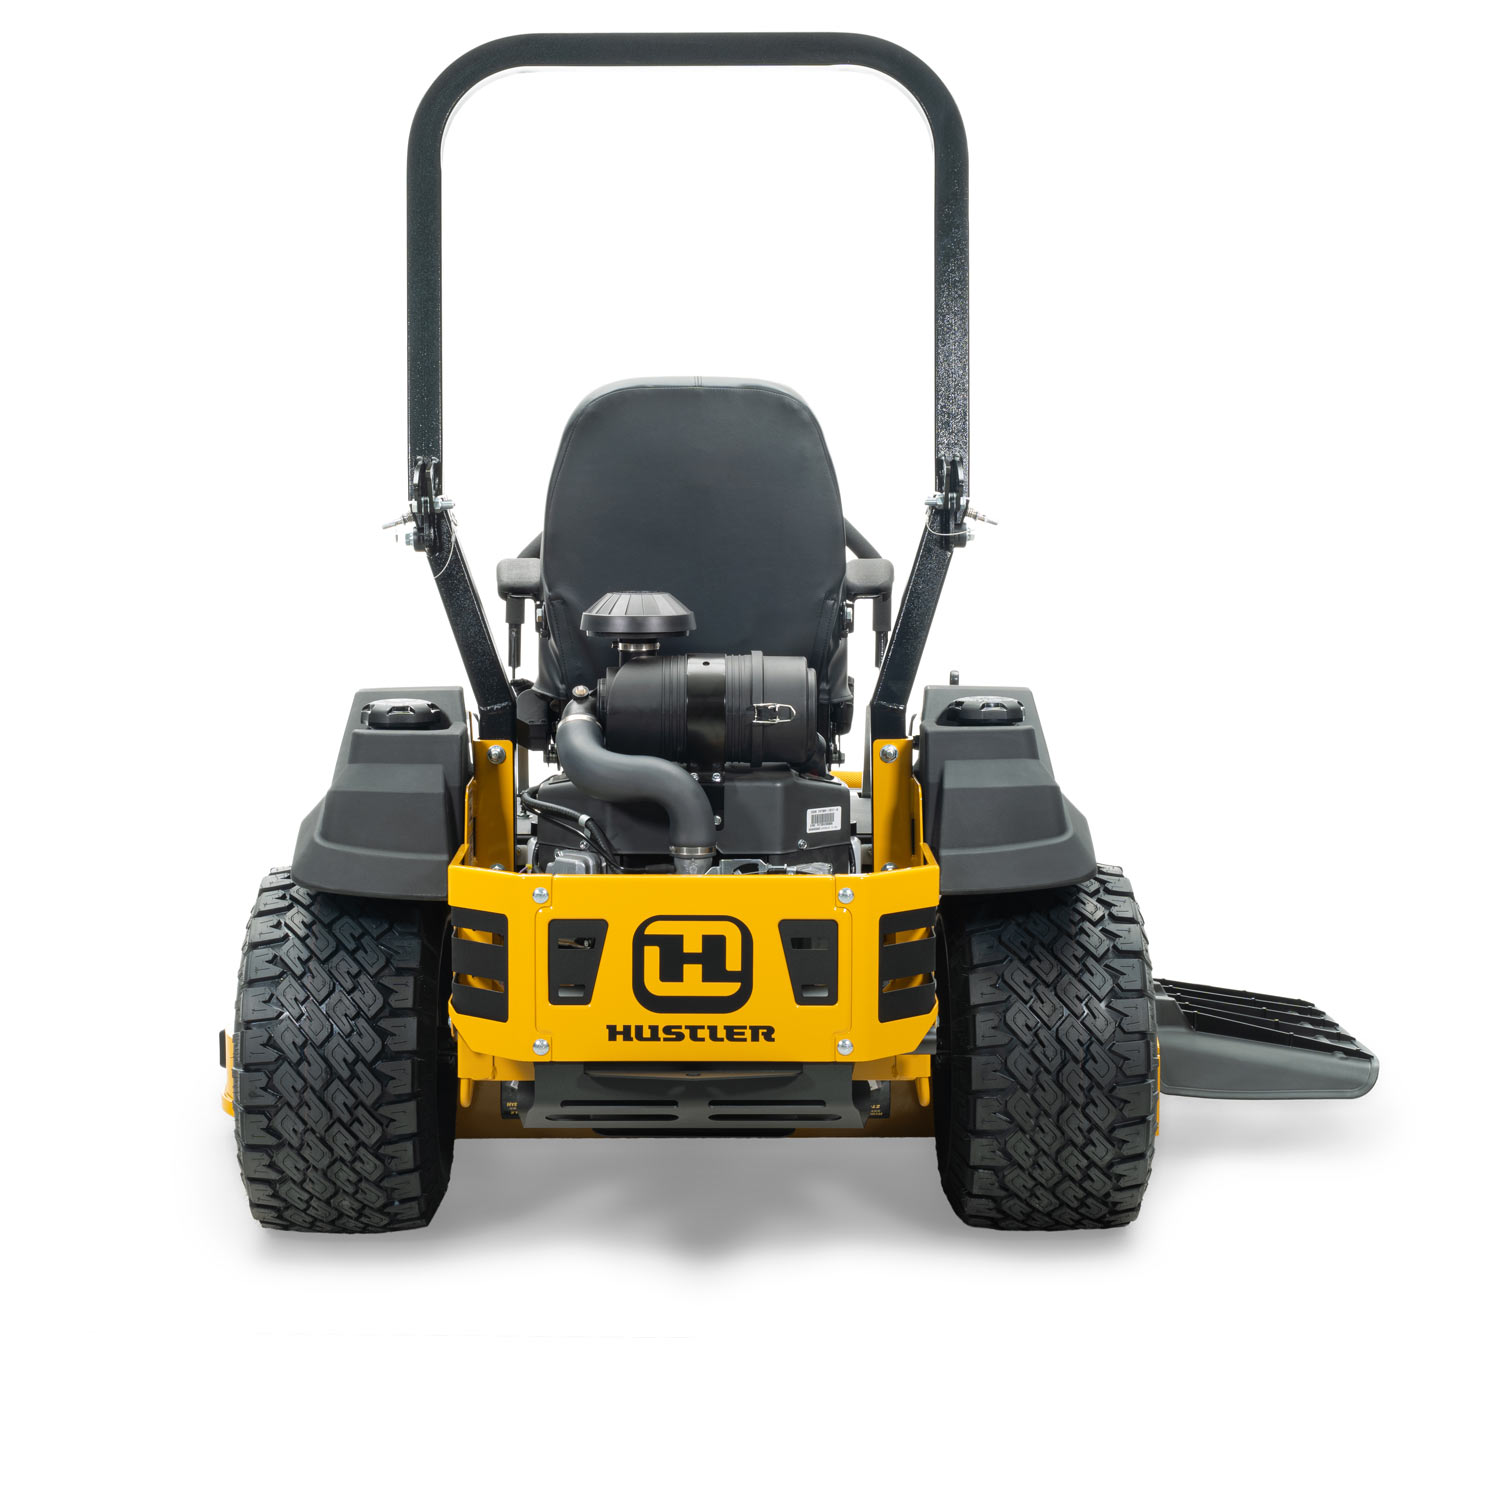 Image of the back of a yellow mower